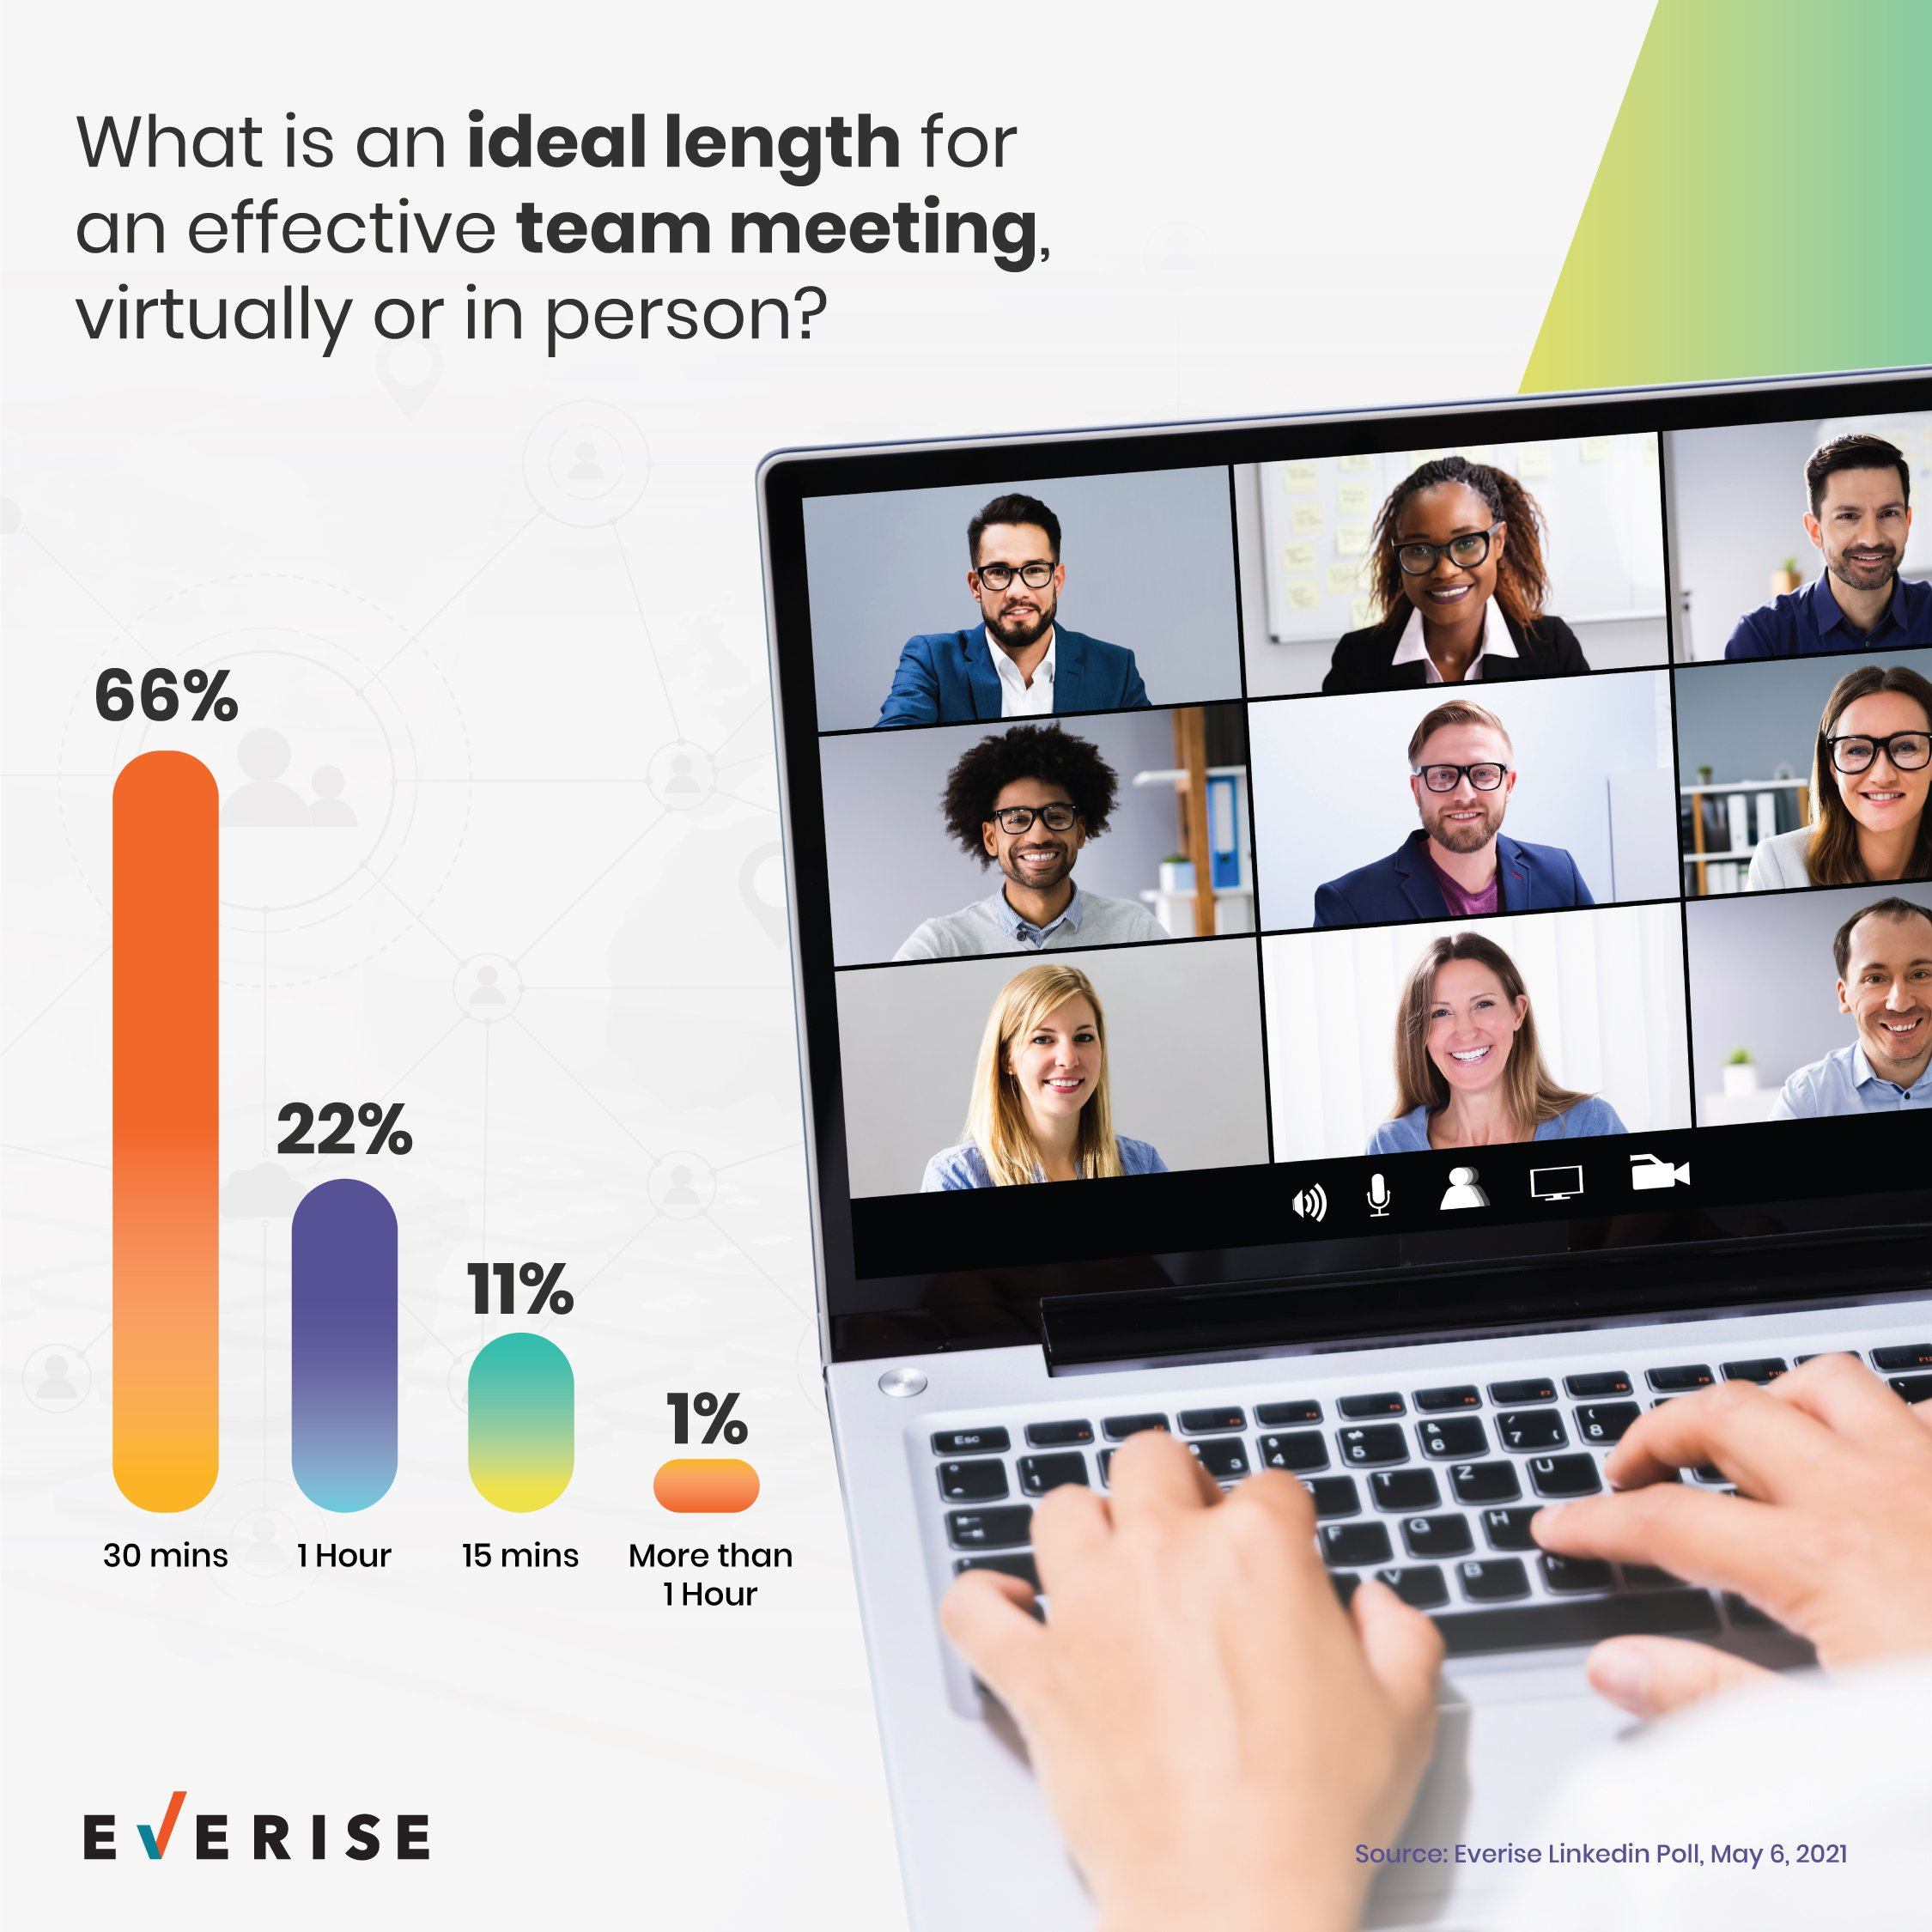 Ideal length for effective team meetings, virtually or in person